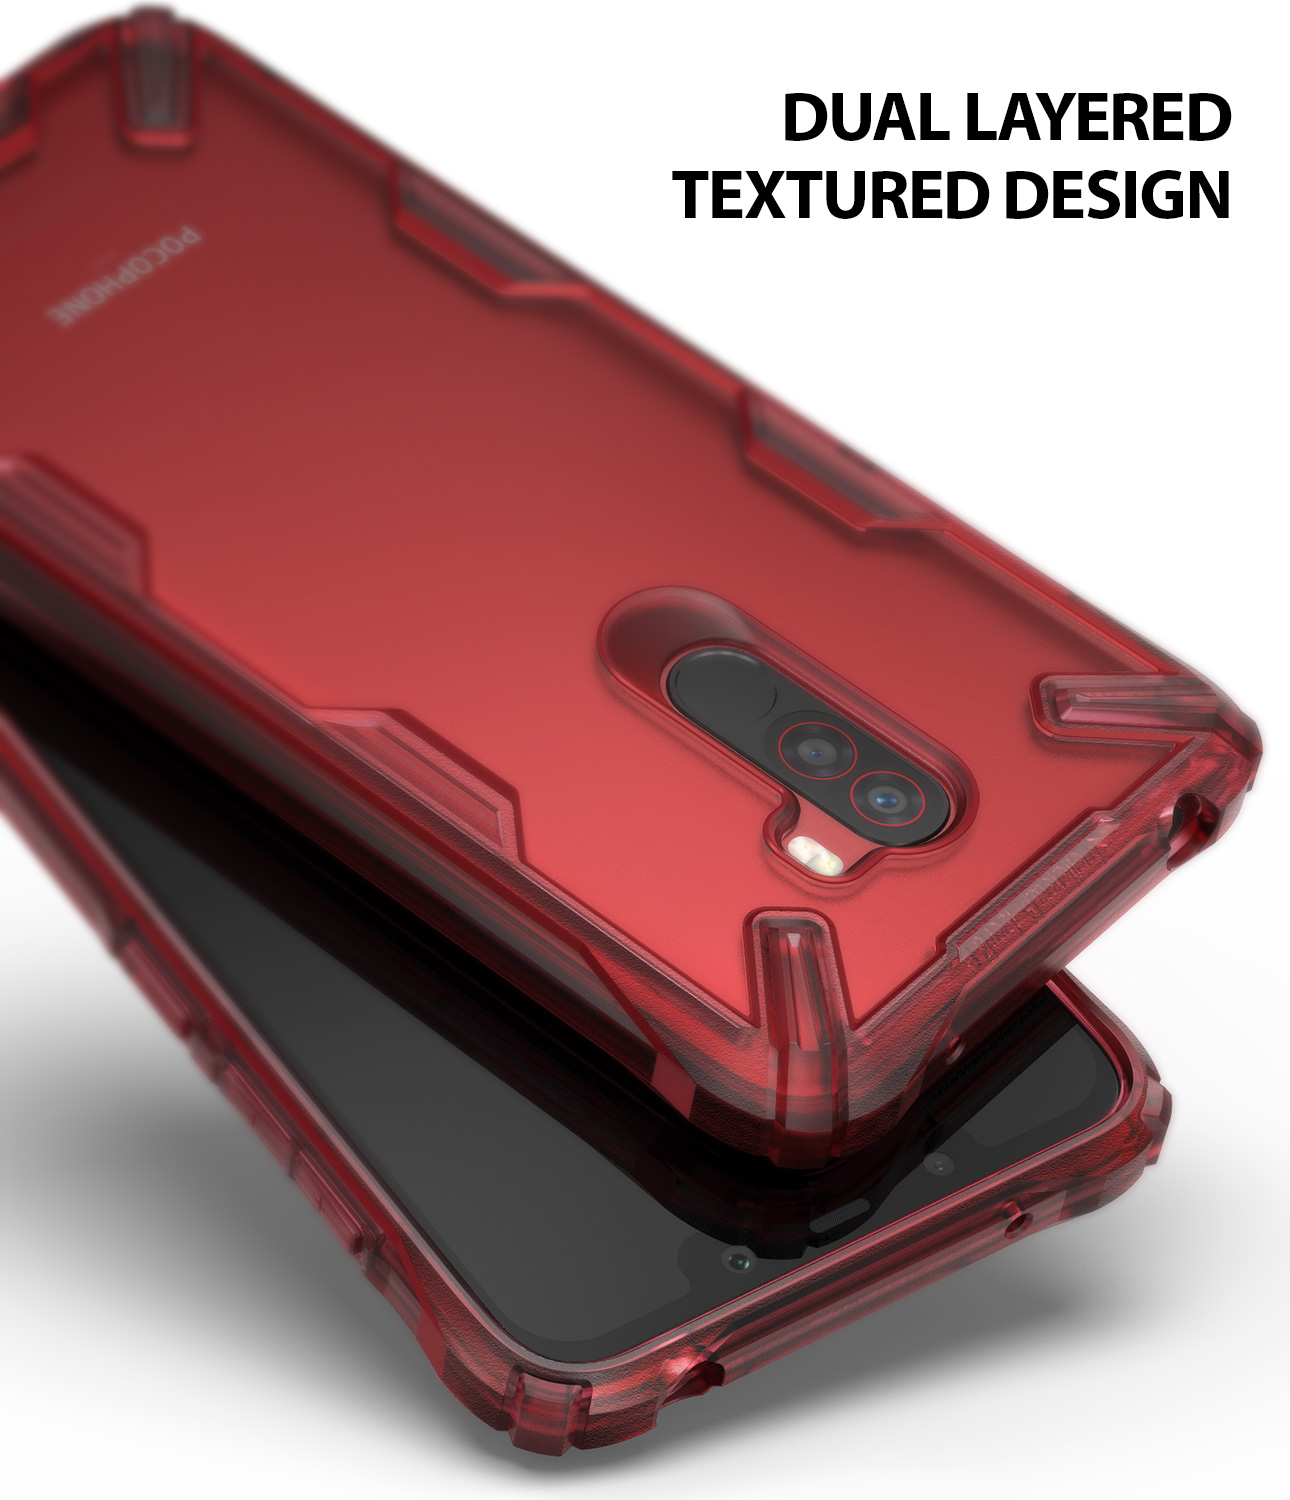 low priced ea85e 76631 US $14.99 |Rearth Ringke Xiaomi Pocophone F1 Case Ringke Fusion X Fashion  Durable Clear Back Cover Hybrid Cases-in Fitted Cases from Cellphones & ...